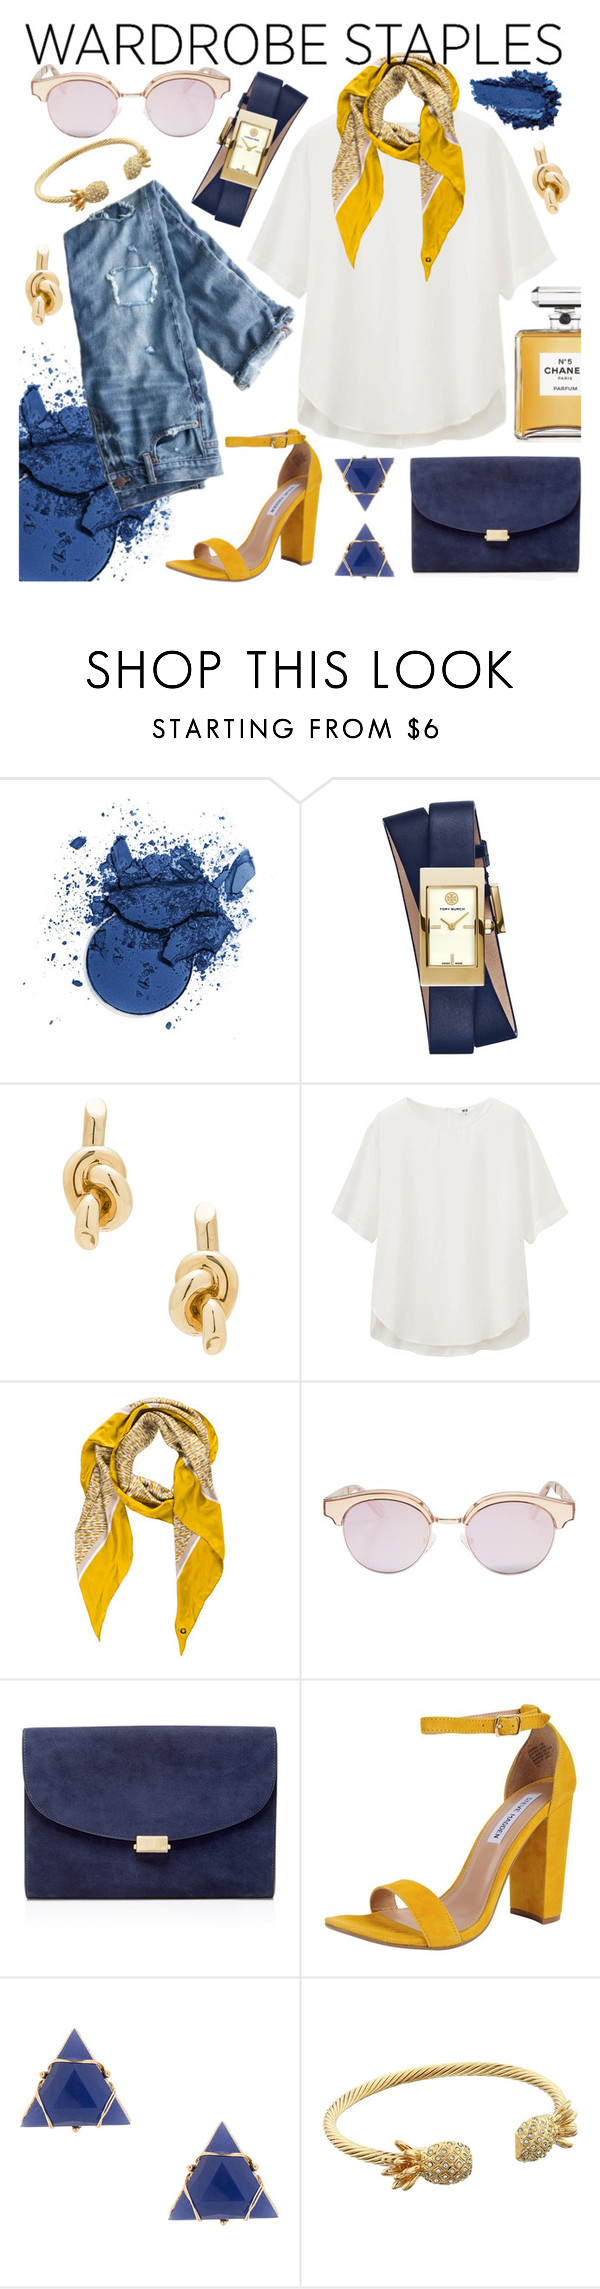 """Wardrobe Staple: White T-Shirt"" by layersfordays ❤ liked on Polyvore featuring Chanel, Tory Burch, Balenciaga, J.Crew, Uniqlo, Loro Piana, Le Specs, Mansur Gavriel, Steve Madden and Lilly Pulitzer"